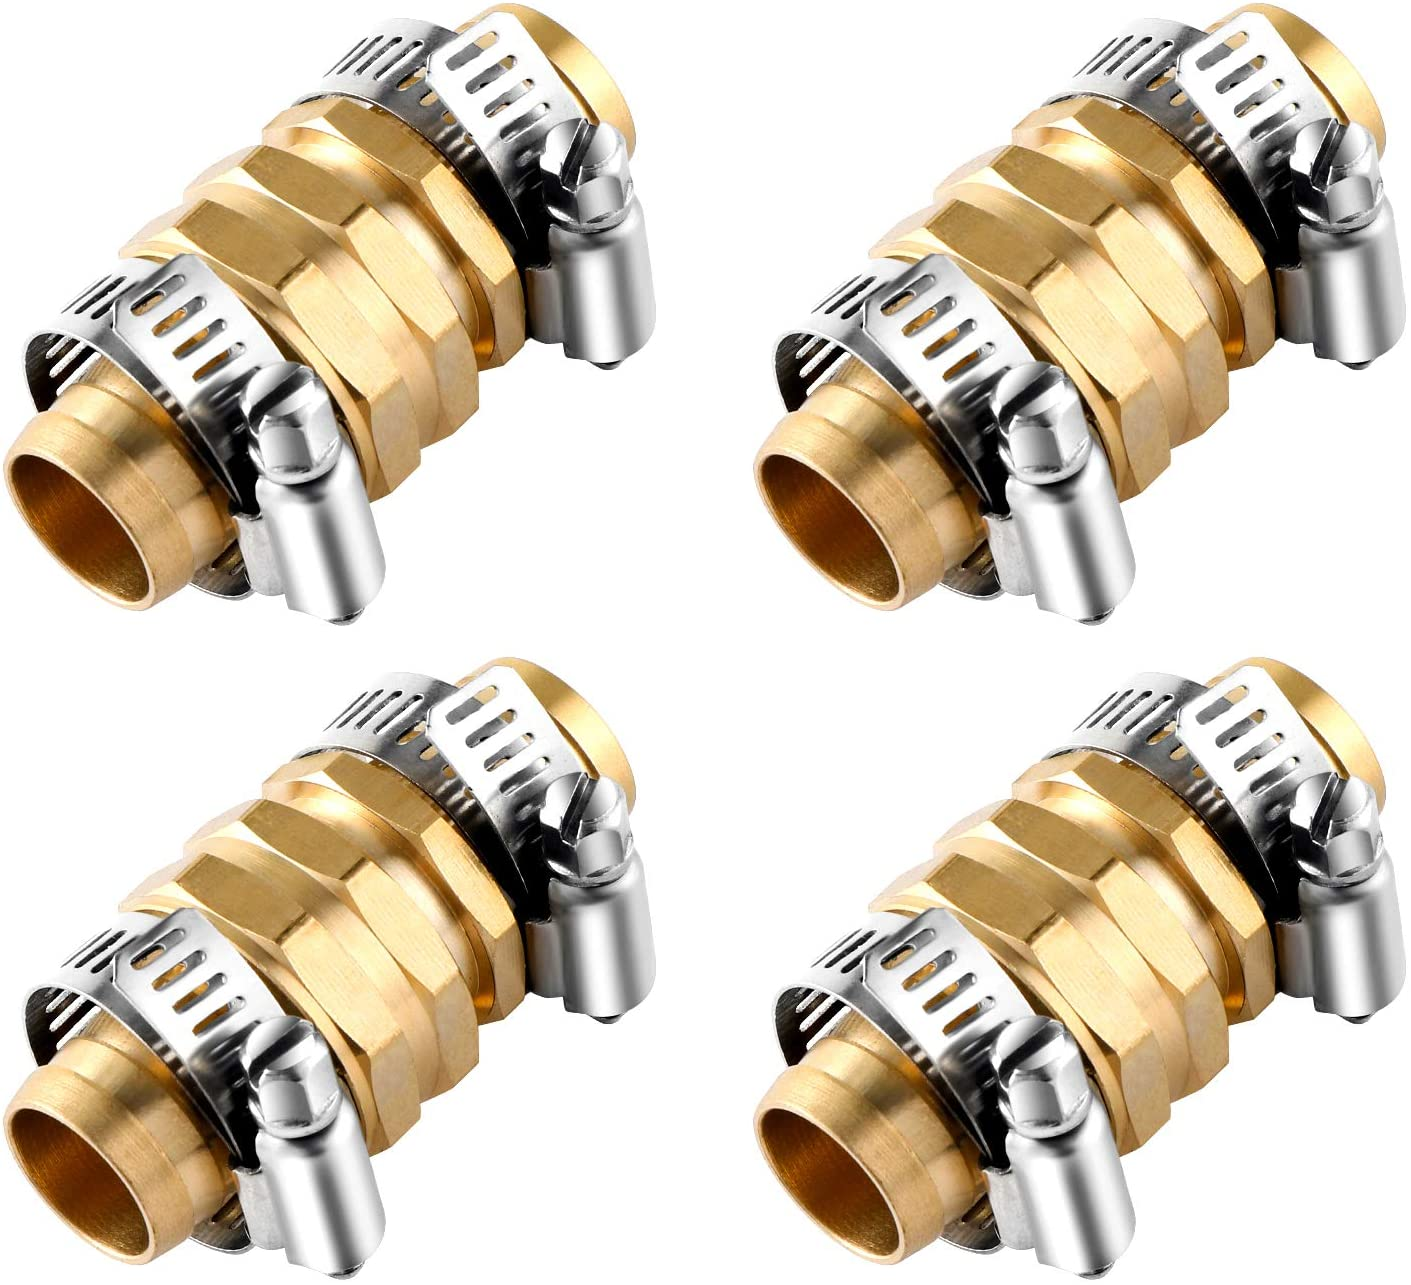 abcGoodefg 4 Sets Brass Garden Hose Mender Female and Male Hose Connector 3/4 Hose Fittings Garden Copper Joint Hose Adapter Water Hose End Replacement Repair Kit with Stainless Steel Clamp